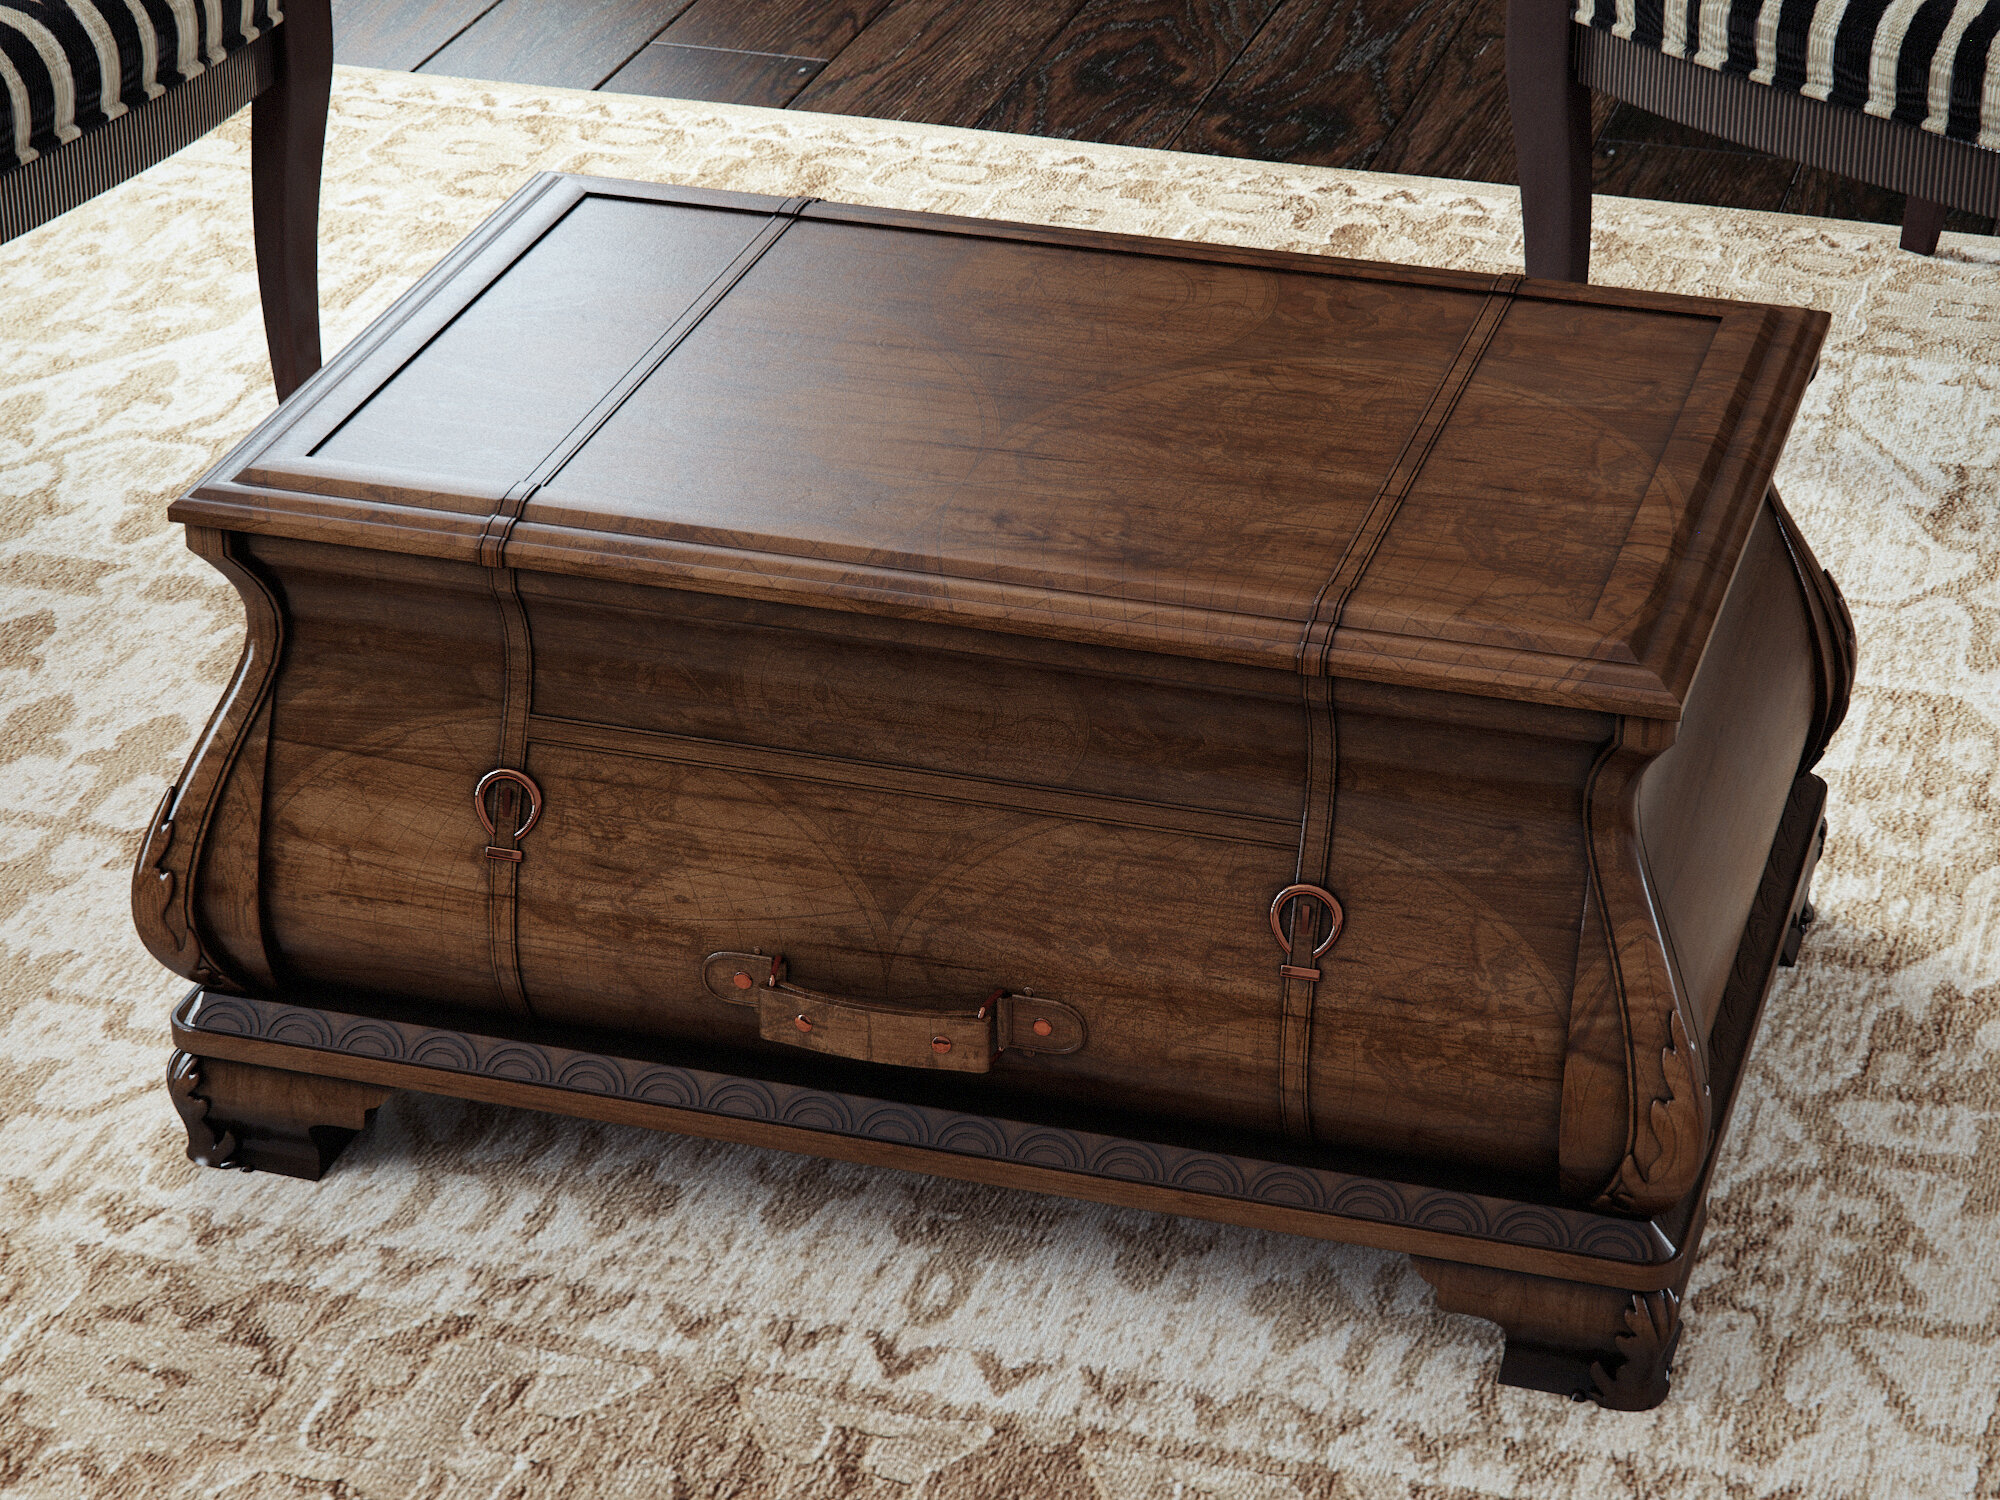 steamer id luggage f z trunks vellum accents coffee table antique trunk collectibles large stylish furniture home at more